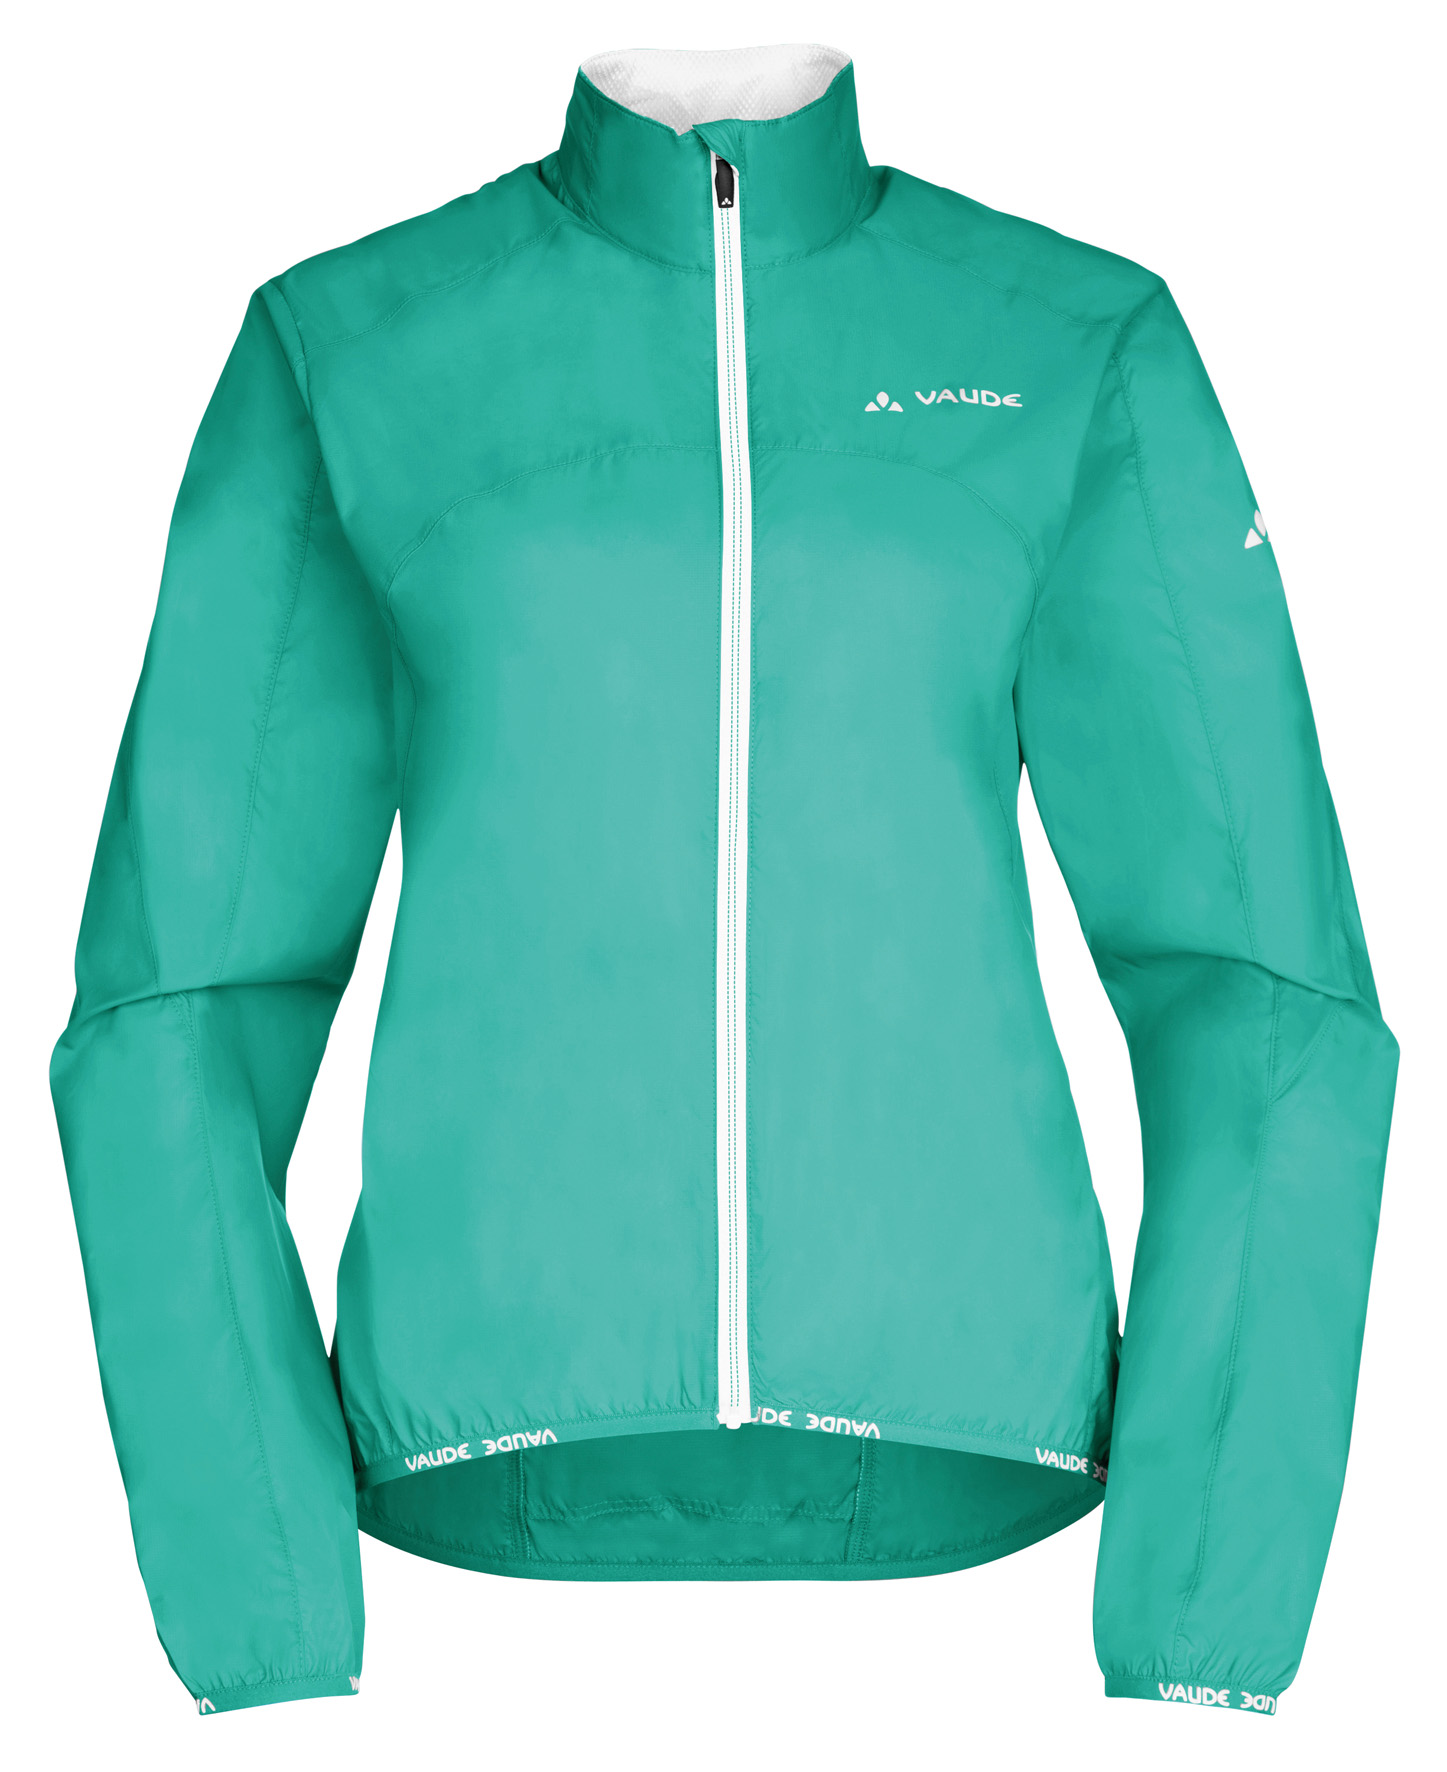 VAUDE Women´s Air Jacket II lotus green Größe 36 - schneider-sports